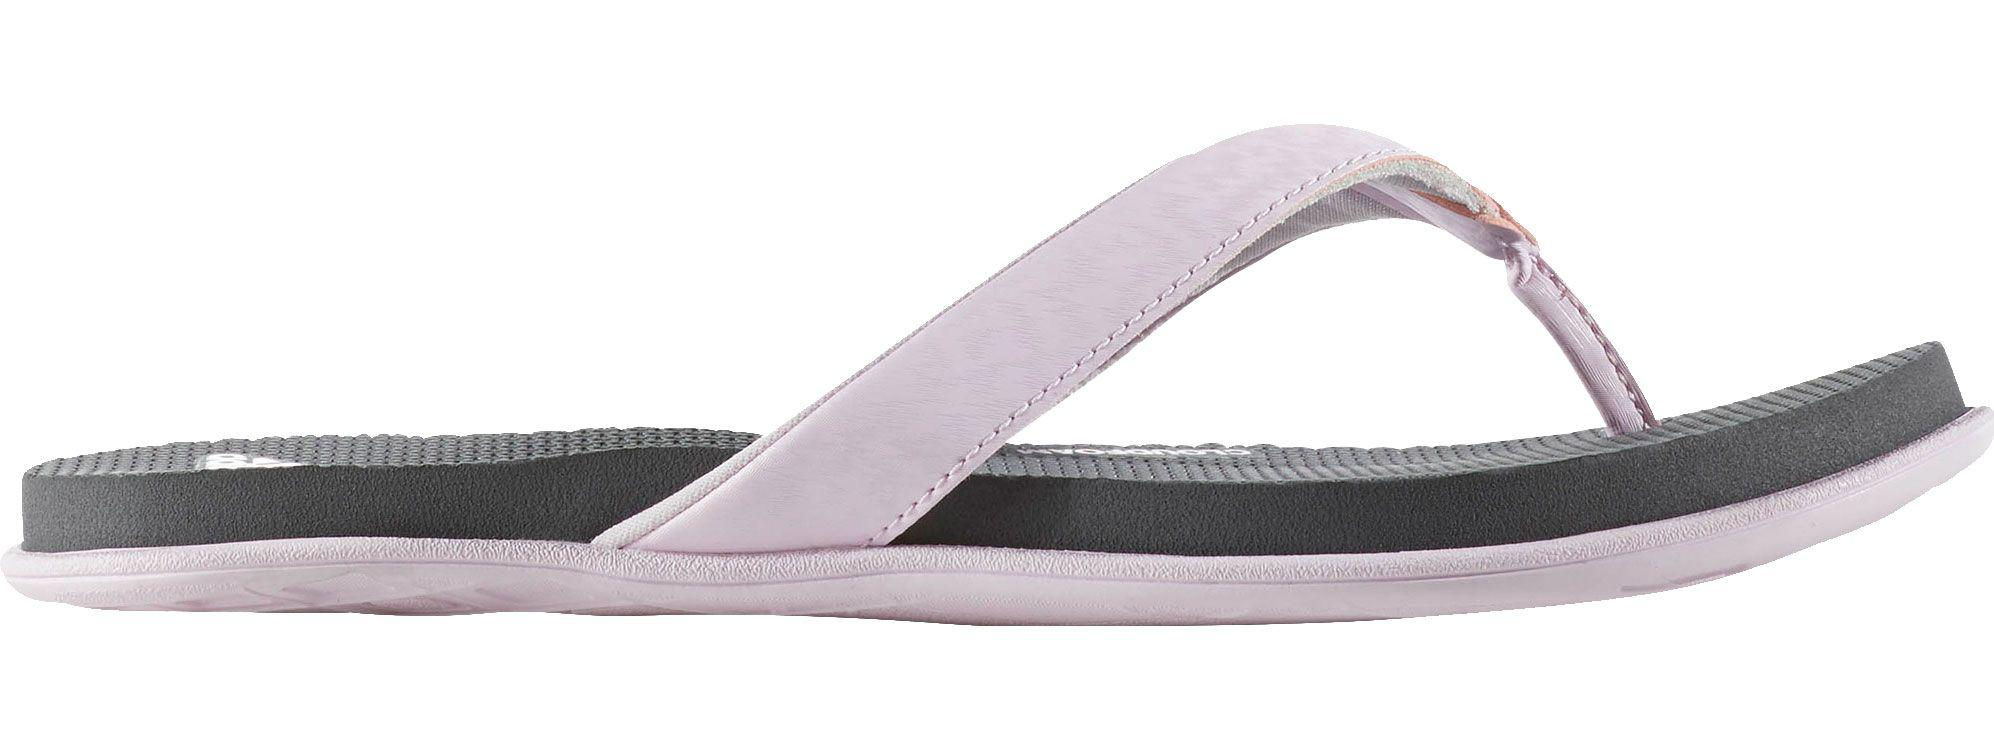 64c522ee27d97 Lyst - adidas Cloudfoam One Thong Sandals in Gray